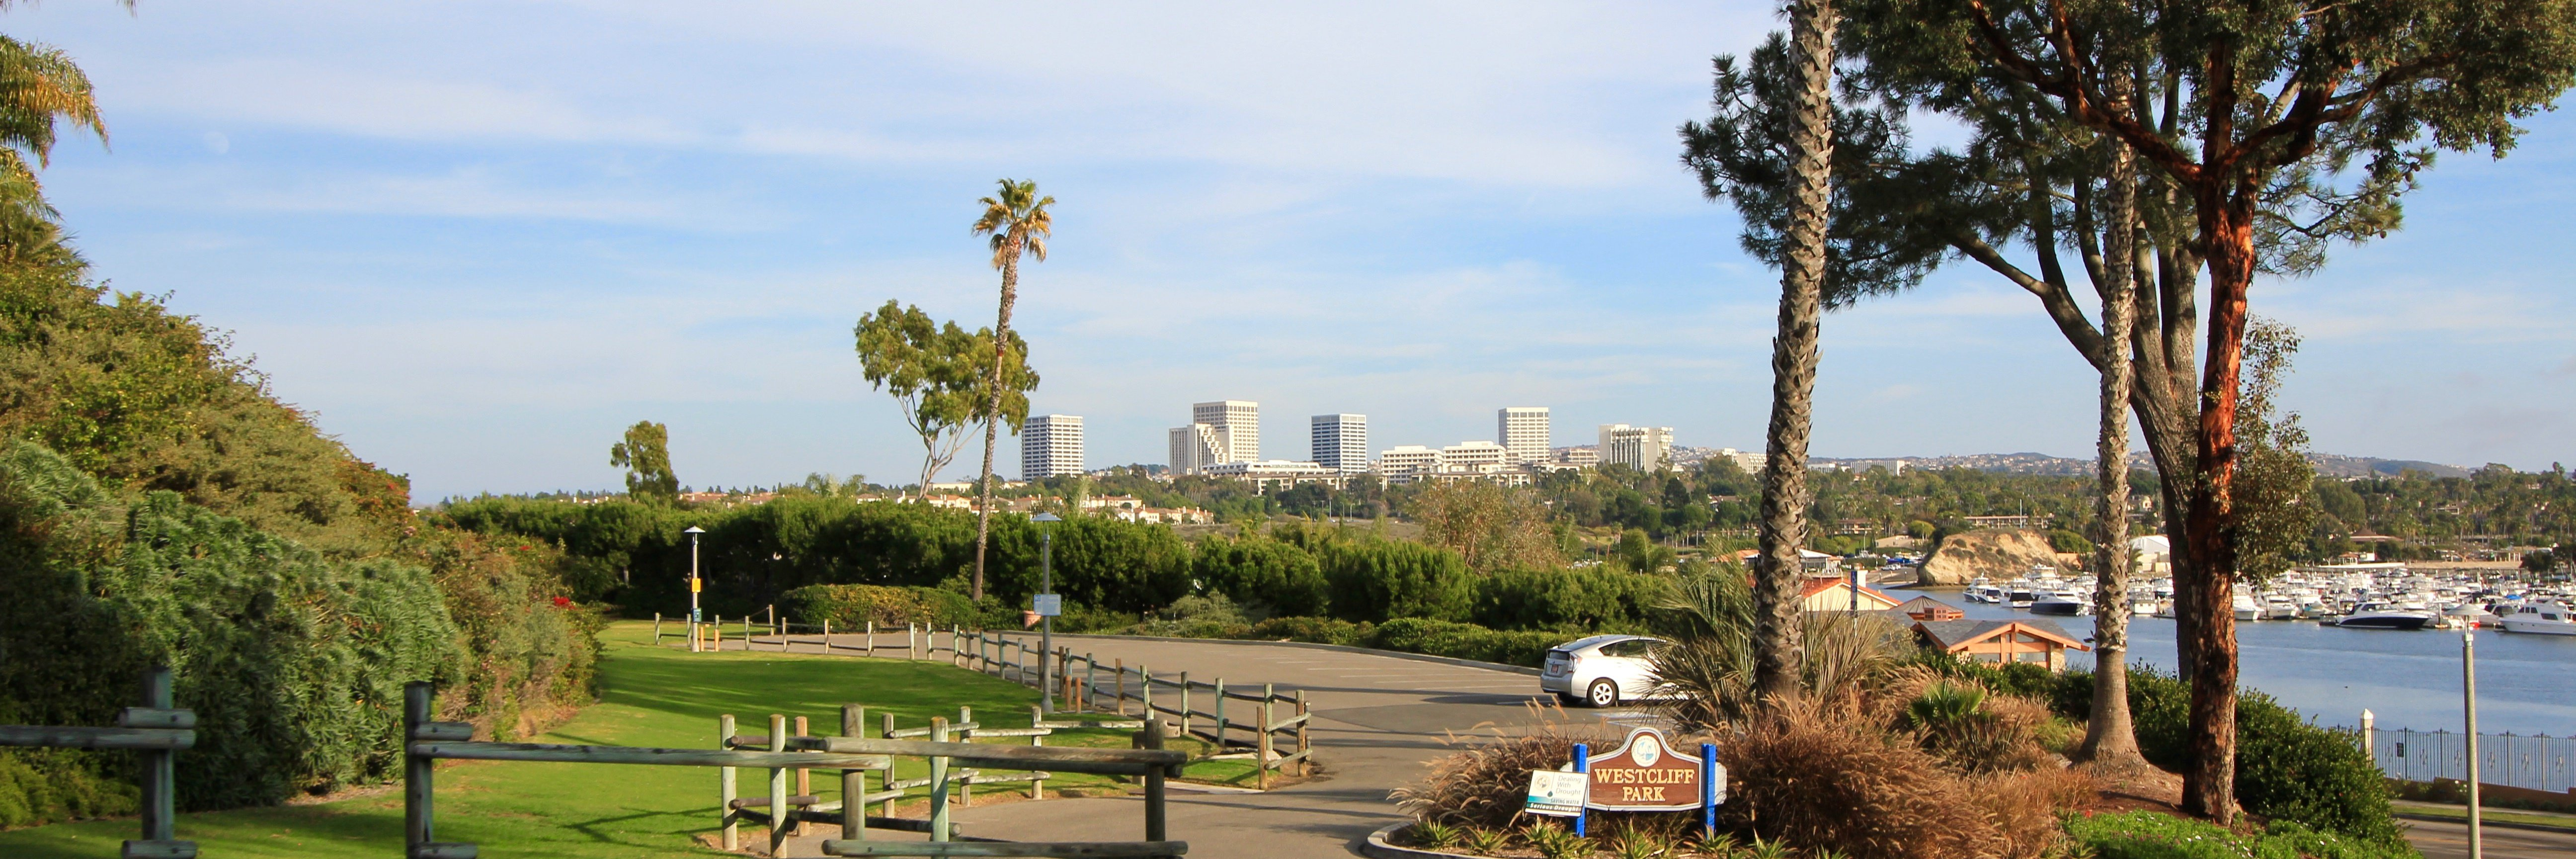 Westcliff is a community located within the city of Newport Beach, CA